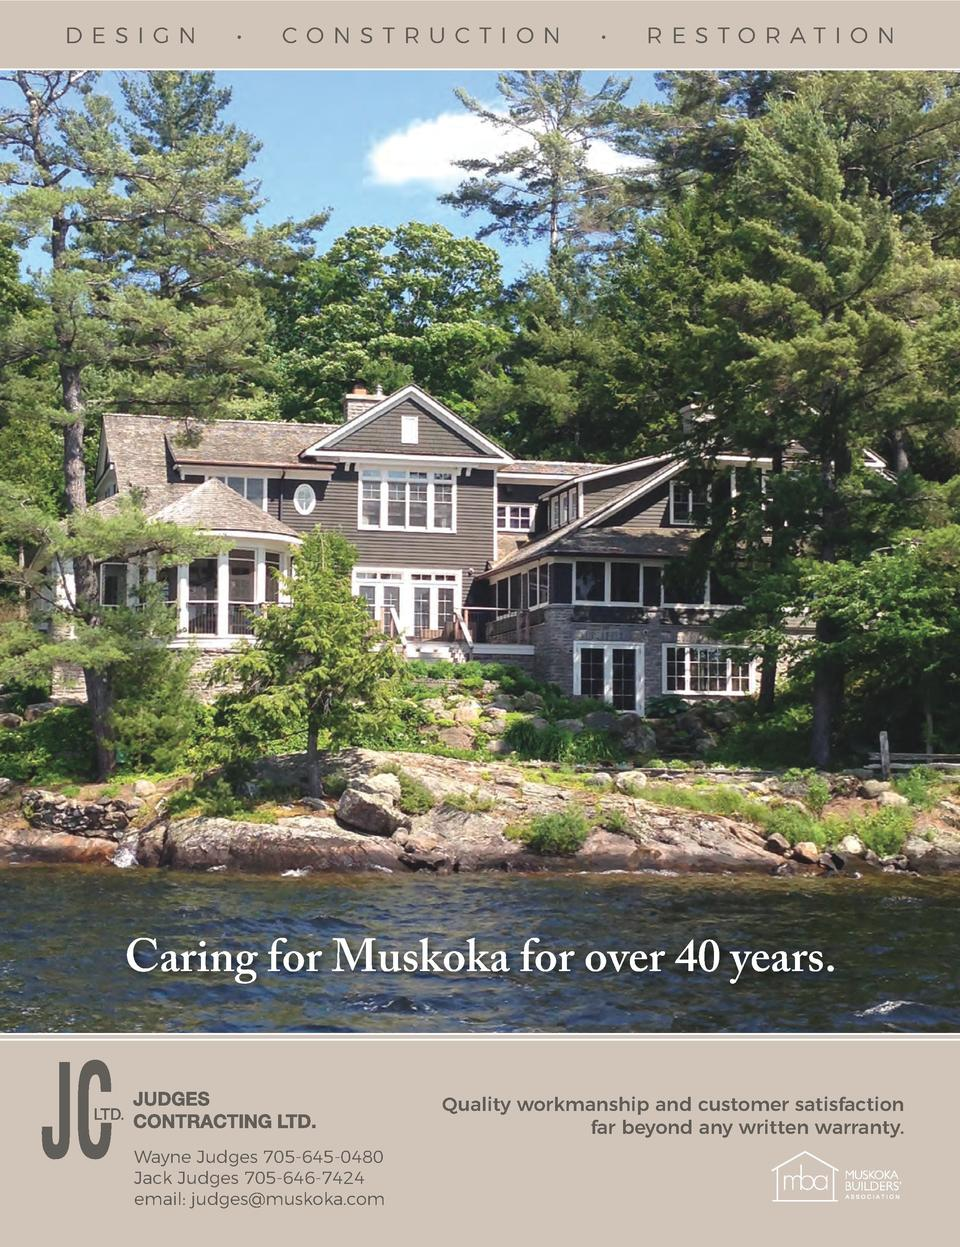 D E SI GN       CONSTRU CTIO N       RE STORAT I O N  FULL PAGE Judges Contracting  Caring for Muskoka for over 40 years. ...